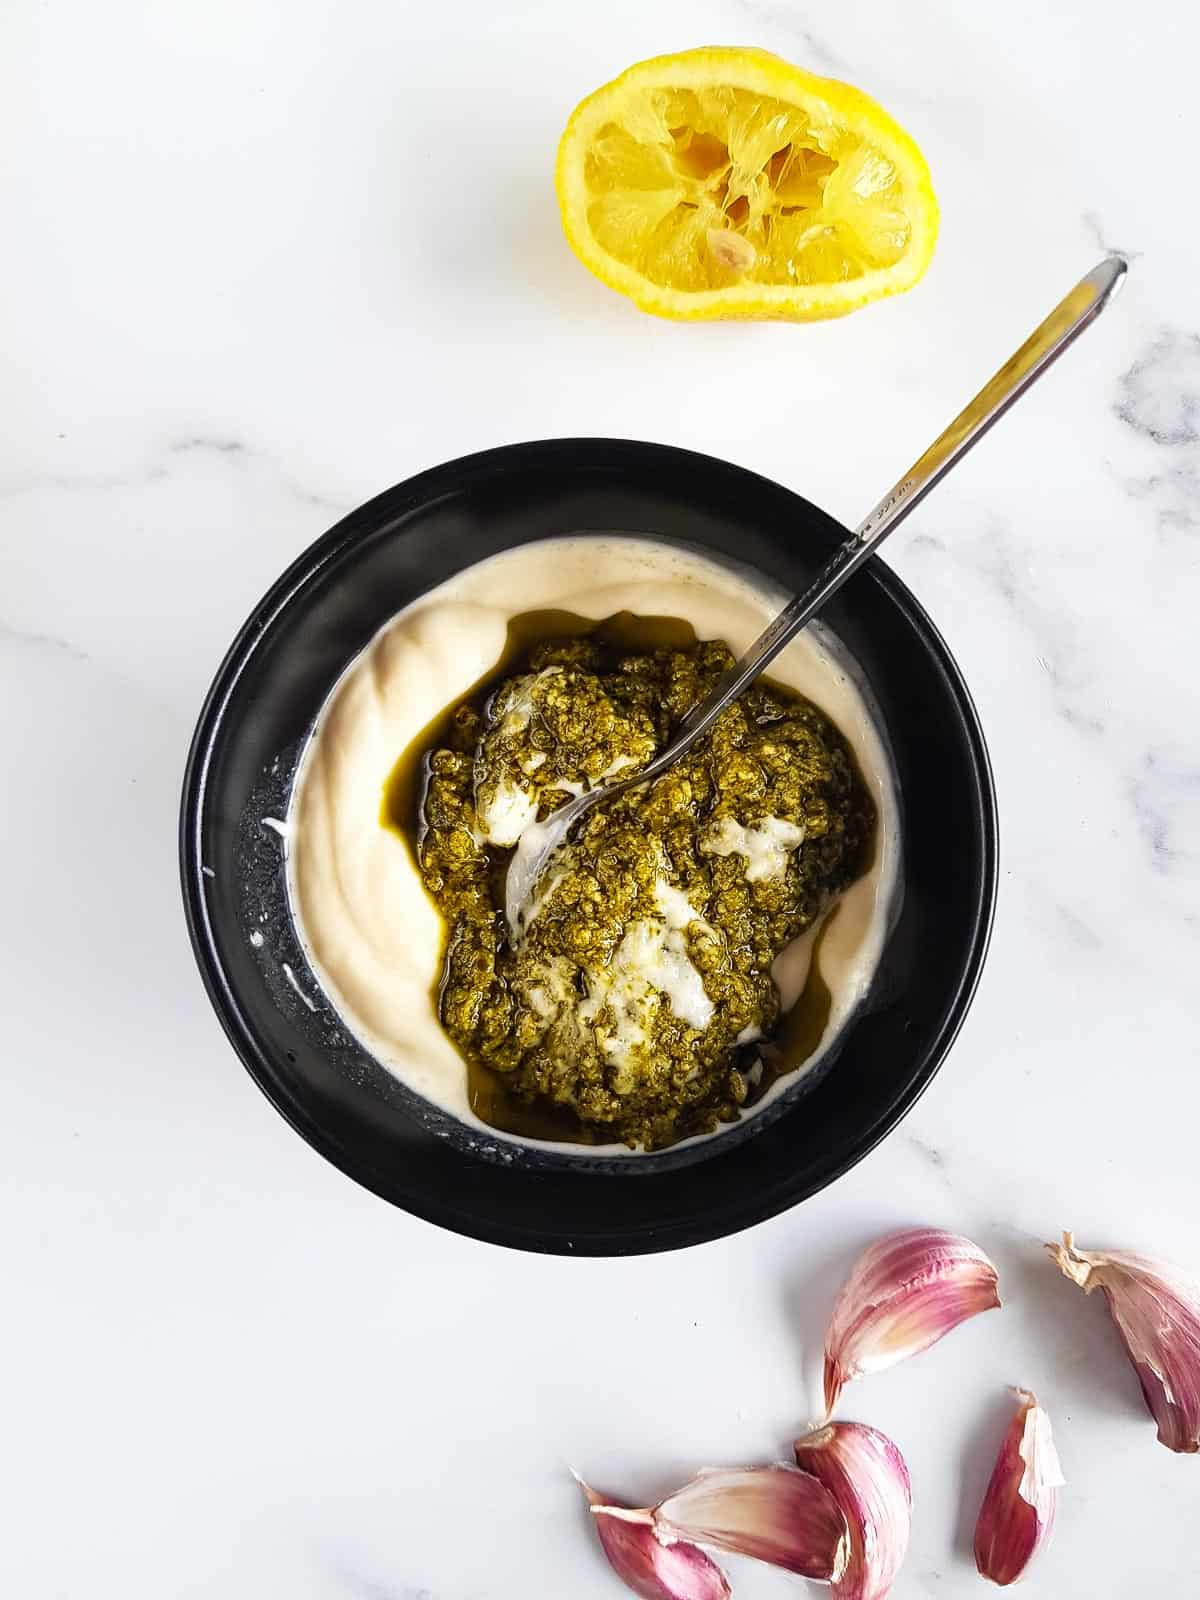 Mixing pesto and mayonnaise in a bowl, with garlic cloves and half a lemon on the side.